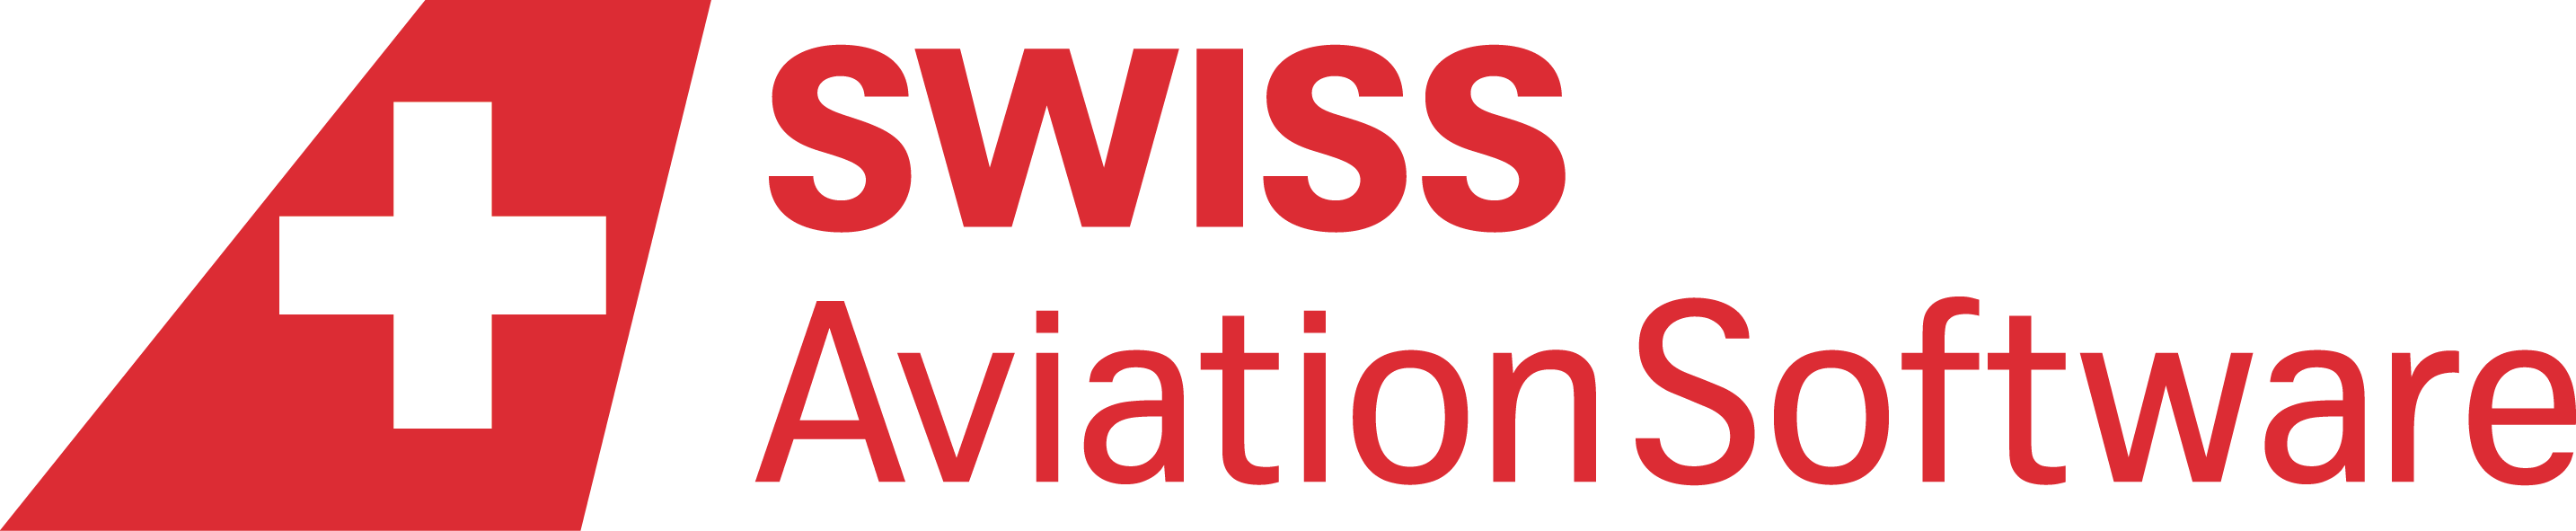 SwissAviationSoftware_Logo